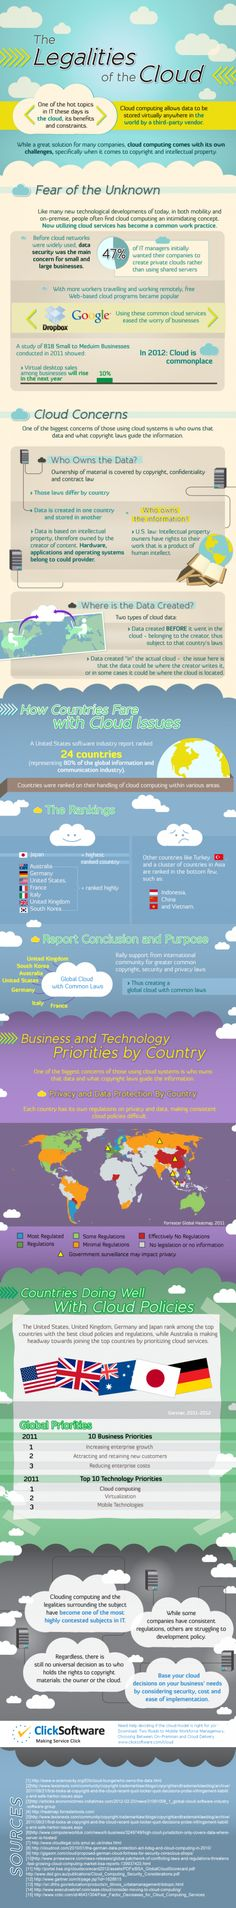 The Legalities of the Cloud: Cloud Computing and Privacy/Security #cloudcomputing #privacy #security